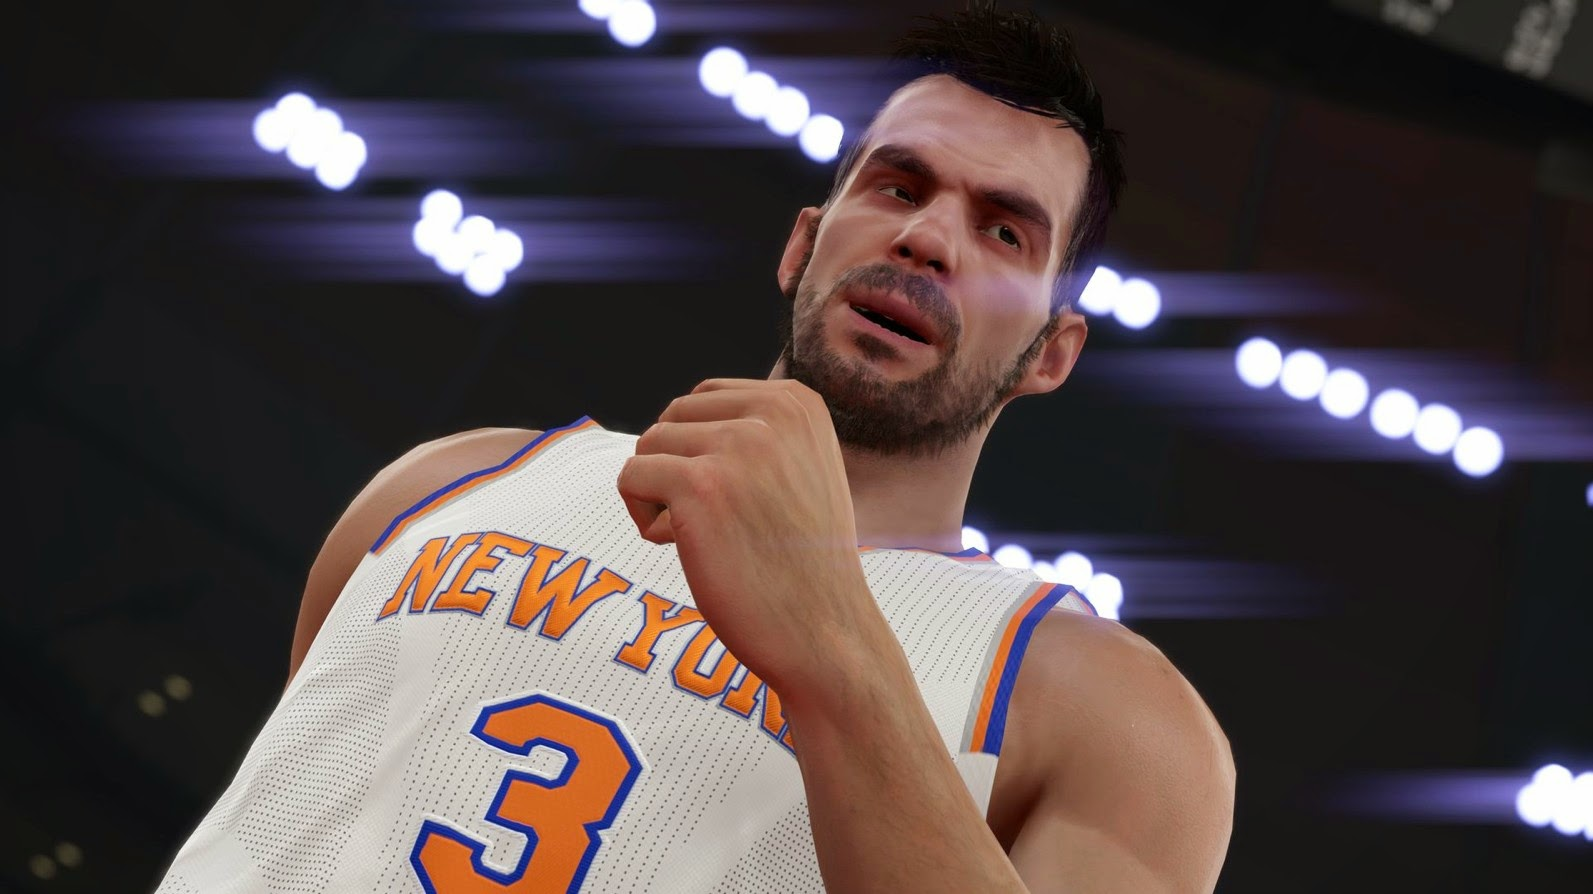 NBA 2K15 Screenshot - Jose Calderon